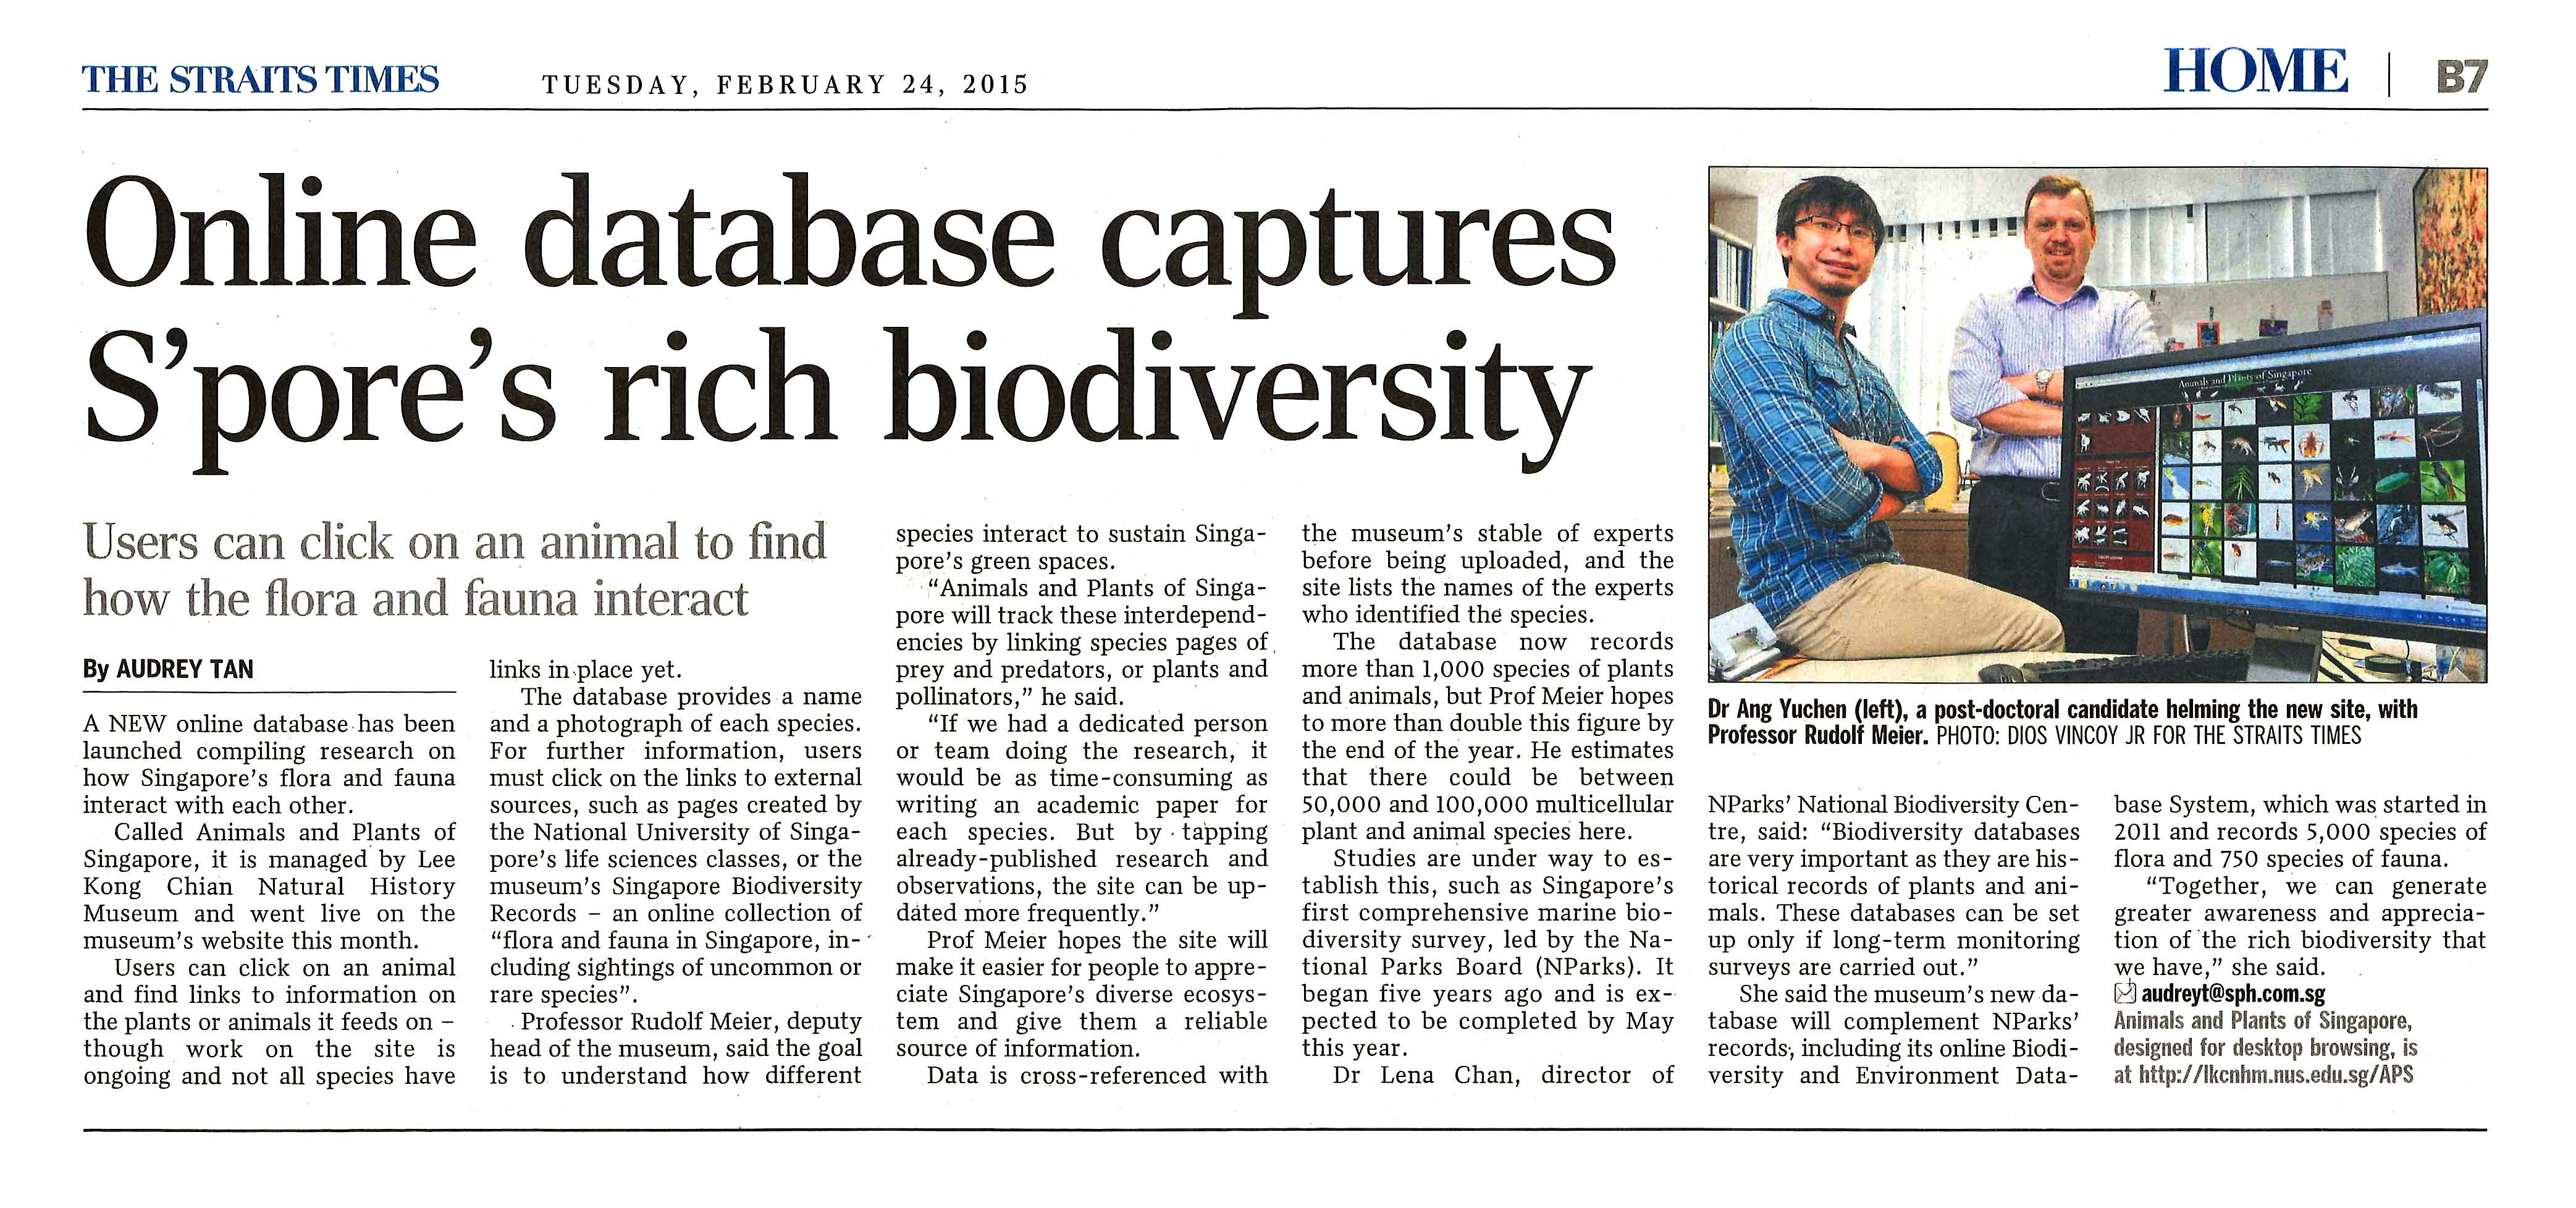 biodiversity in singapore Biodiversity of singapore symposium iii sat 24 sep 2011 @ nus lt27, 8am-6pm click to read the abstracts or the tweets nus cast & youtube of talks part 1 - welcome address, goh address, symposium awards nuscast or youtube part 2 - impressions from the community and forests session nuscast or youtube part 3 - special.